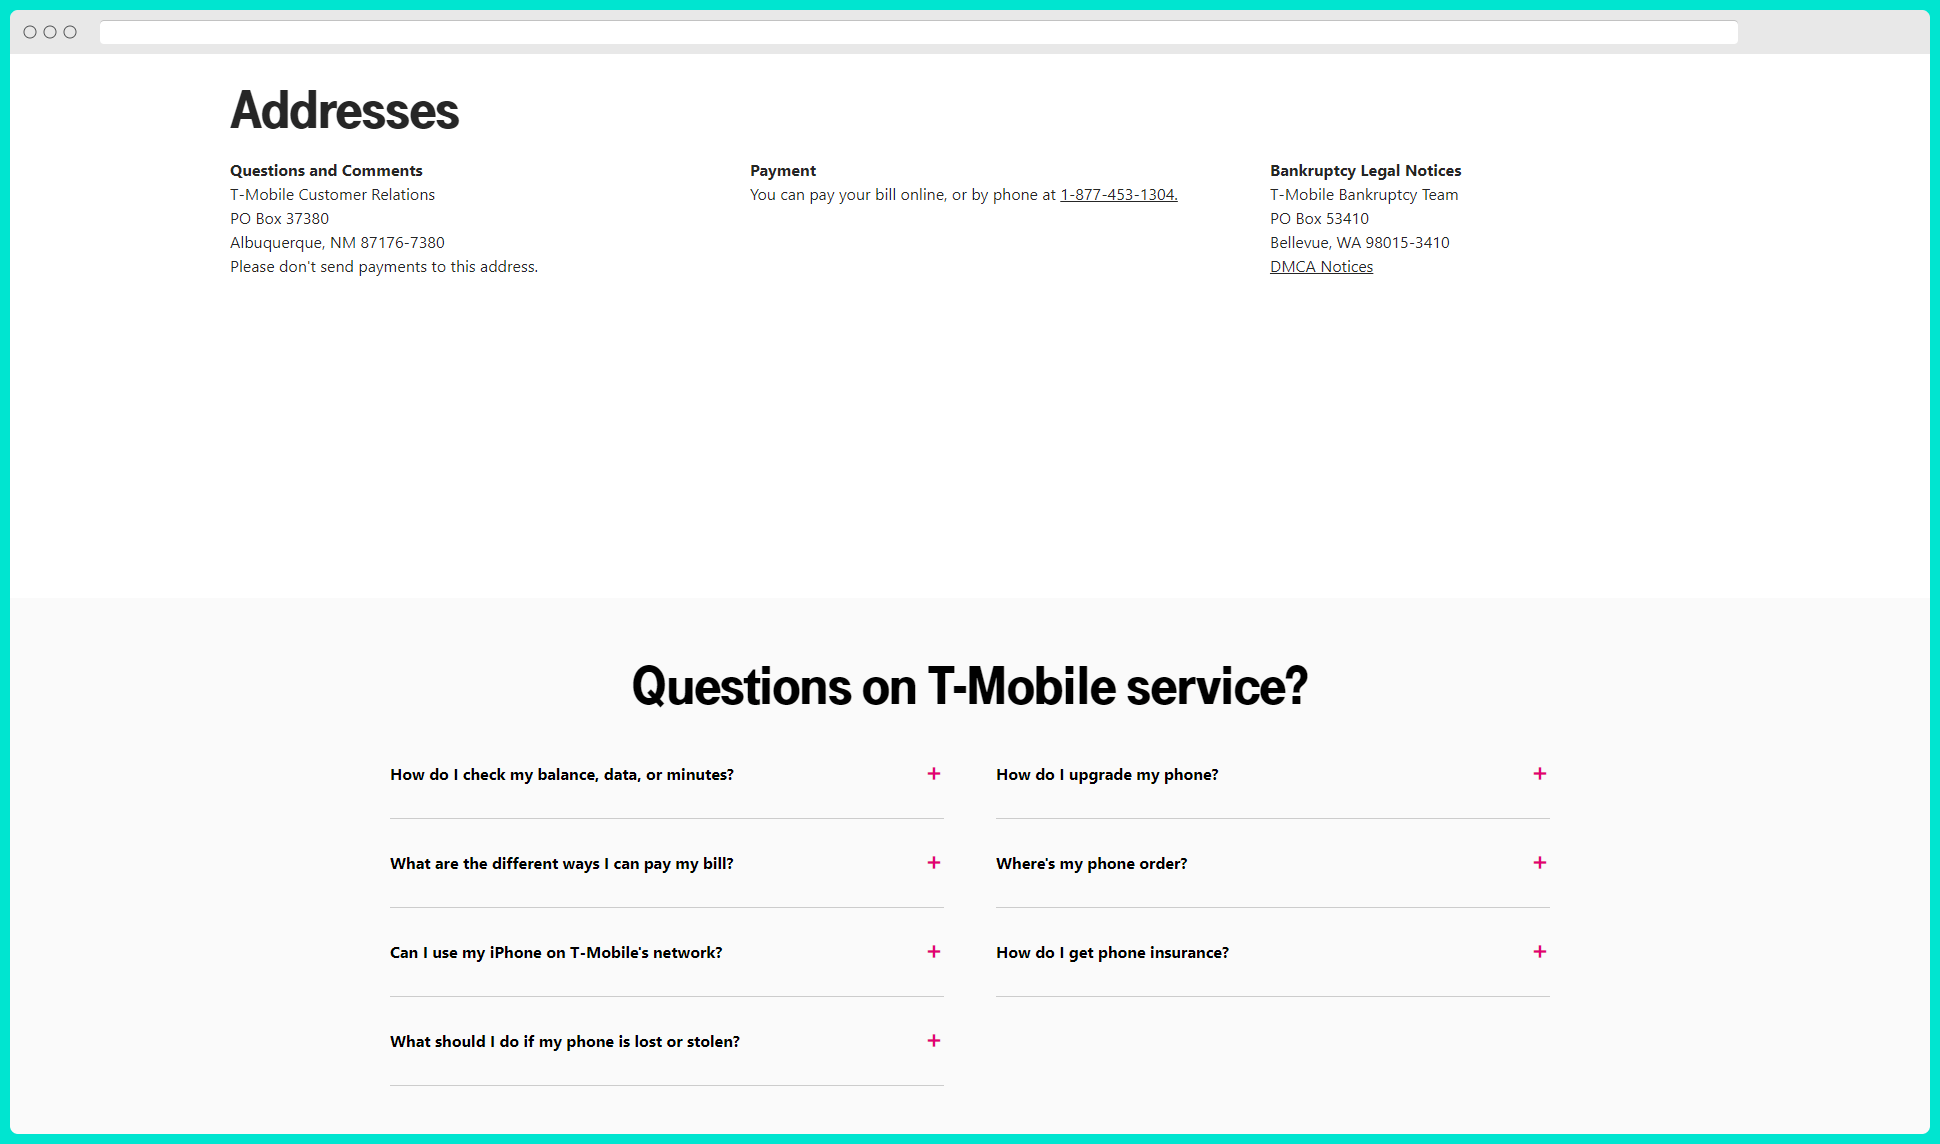 t-mobile contact page seo example address and frequently asked questions